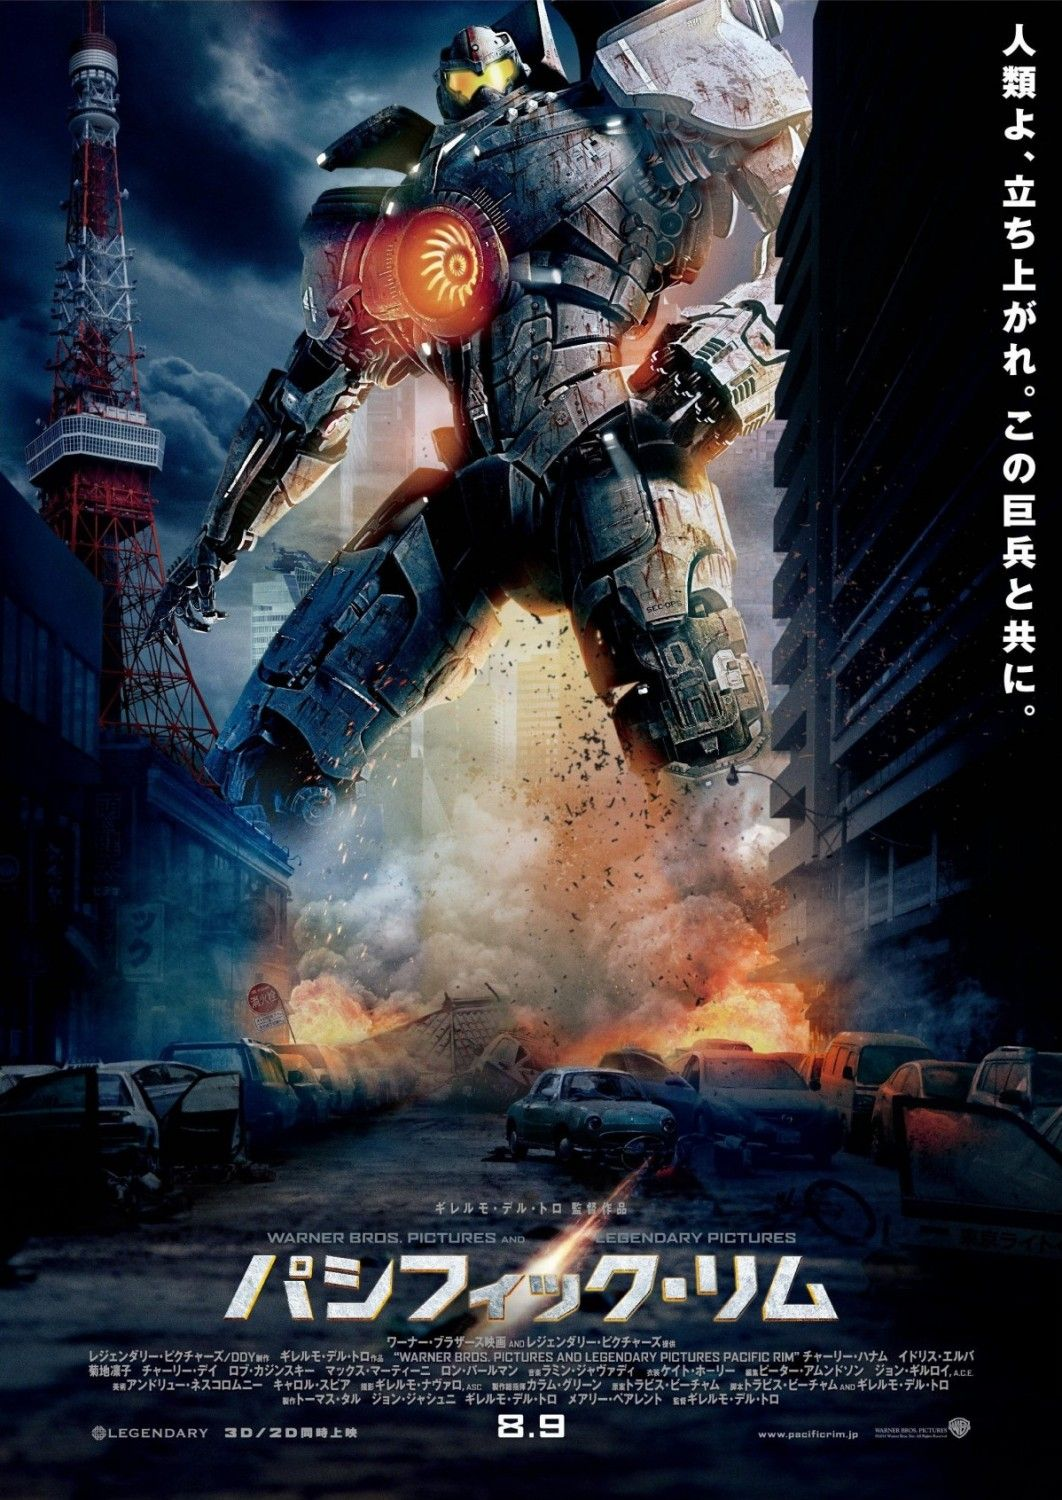 PACIFIC RIM movie poster 16 - Gypsy Danger Ready to Rock ... Pacific Rim Gipsy Danger Poster